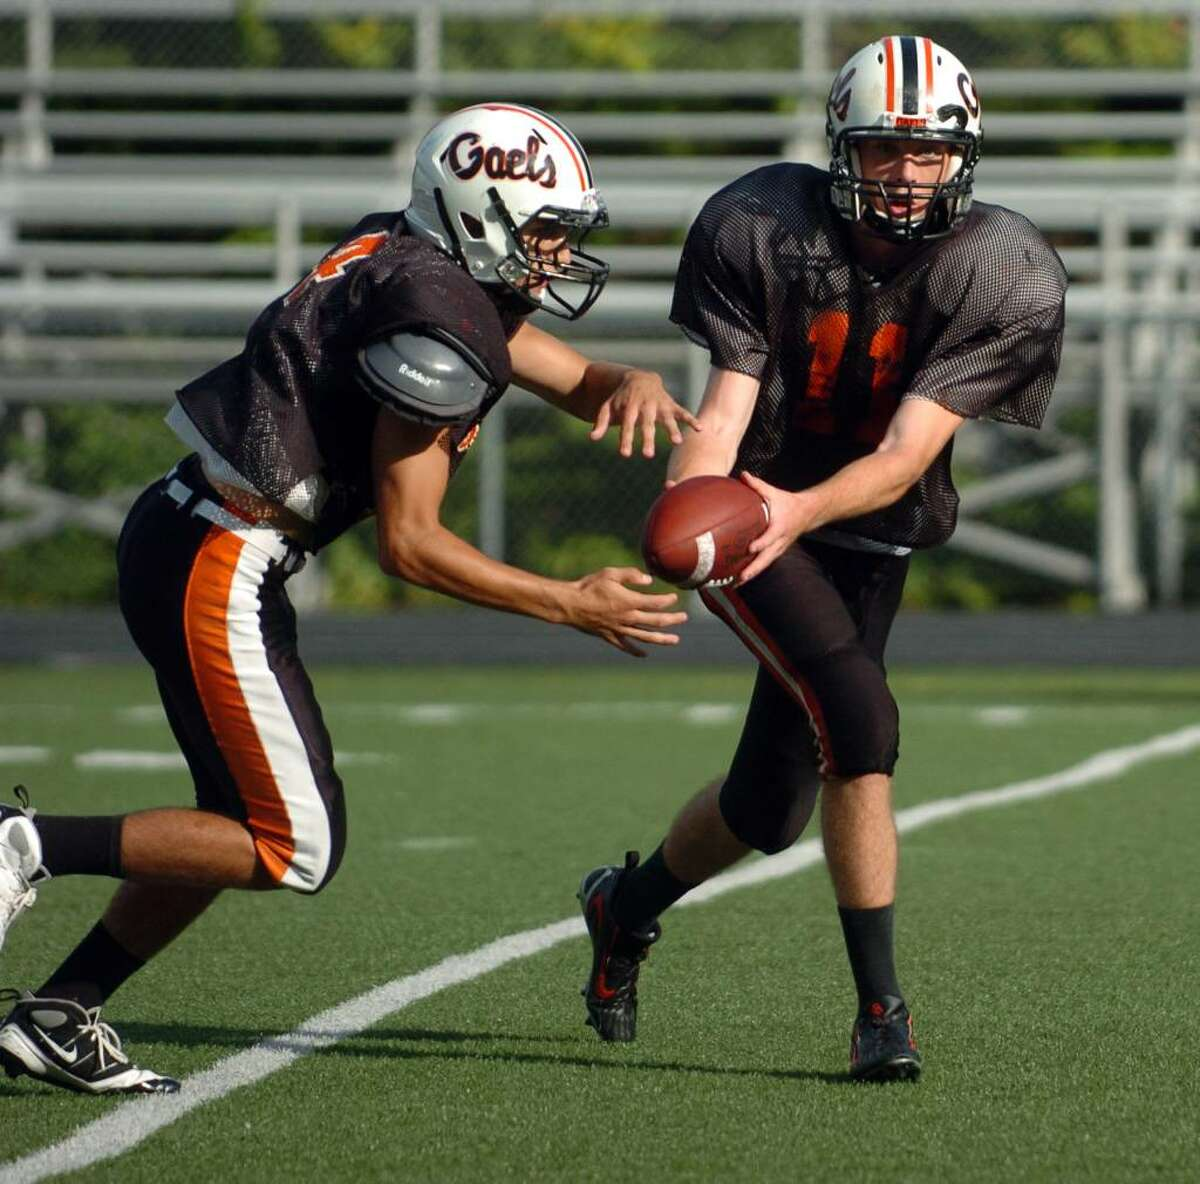 Shelton QB Ryan Pendagast, right, hands off the ball to running back Joel Youd during team practice in Shelton, Conn. on Wednesday Sept. 23, 2009.